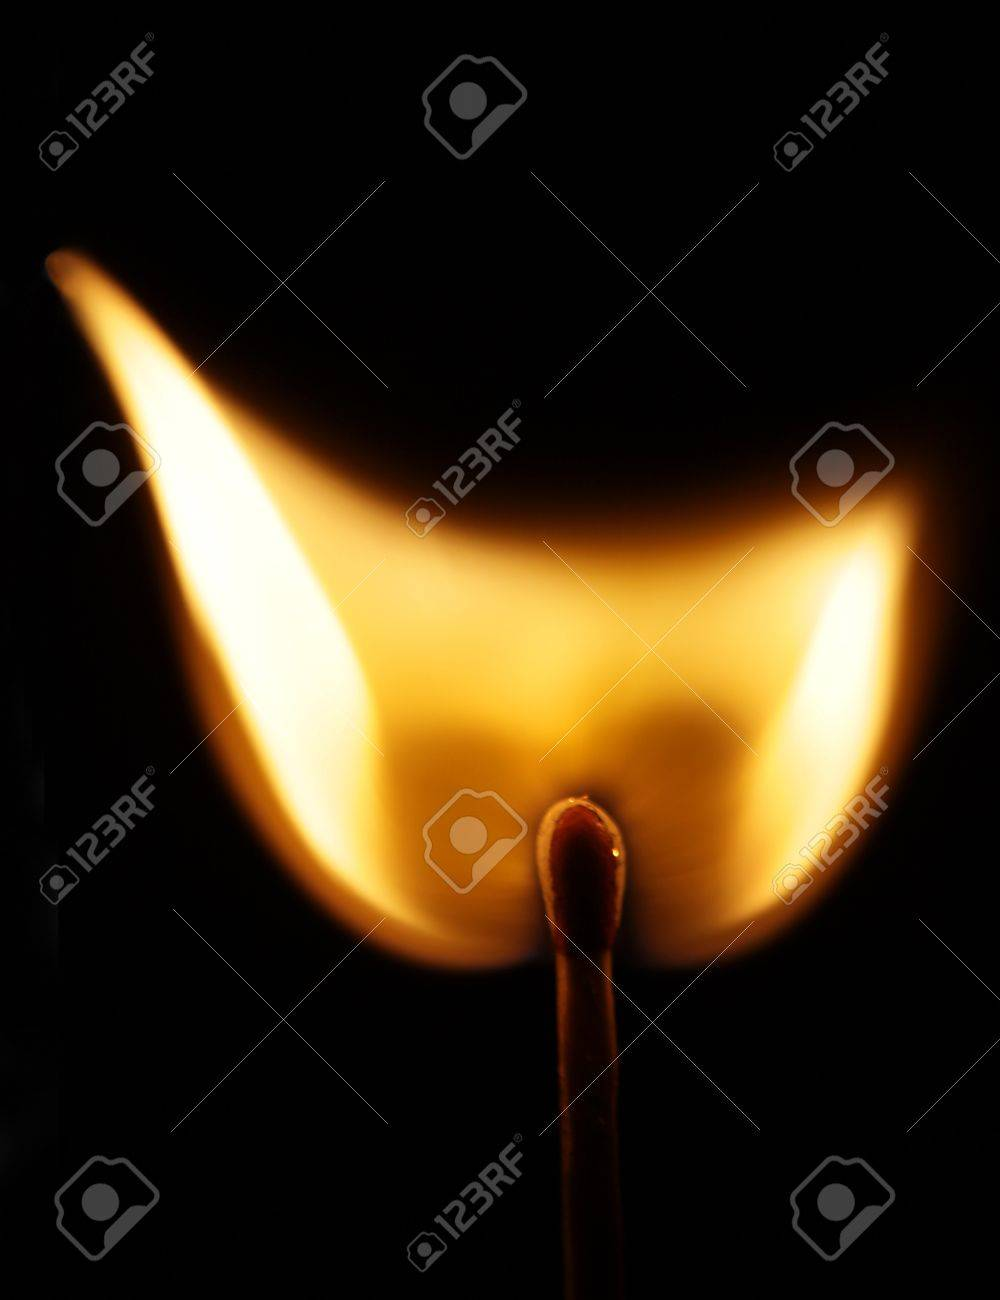 Flame from a lit match isolated on black background. Stock Photo - 16437869